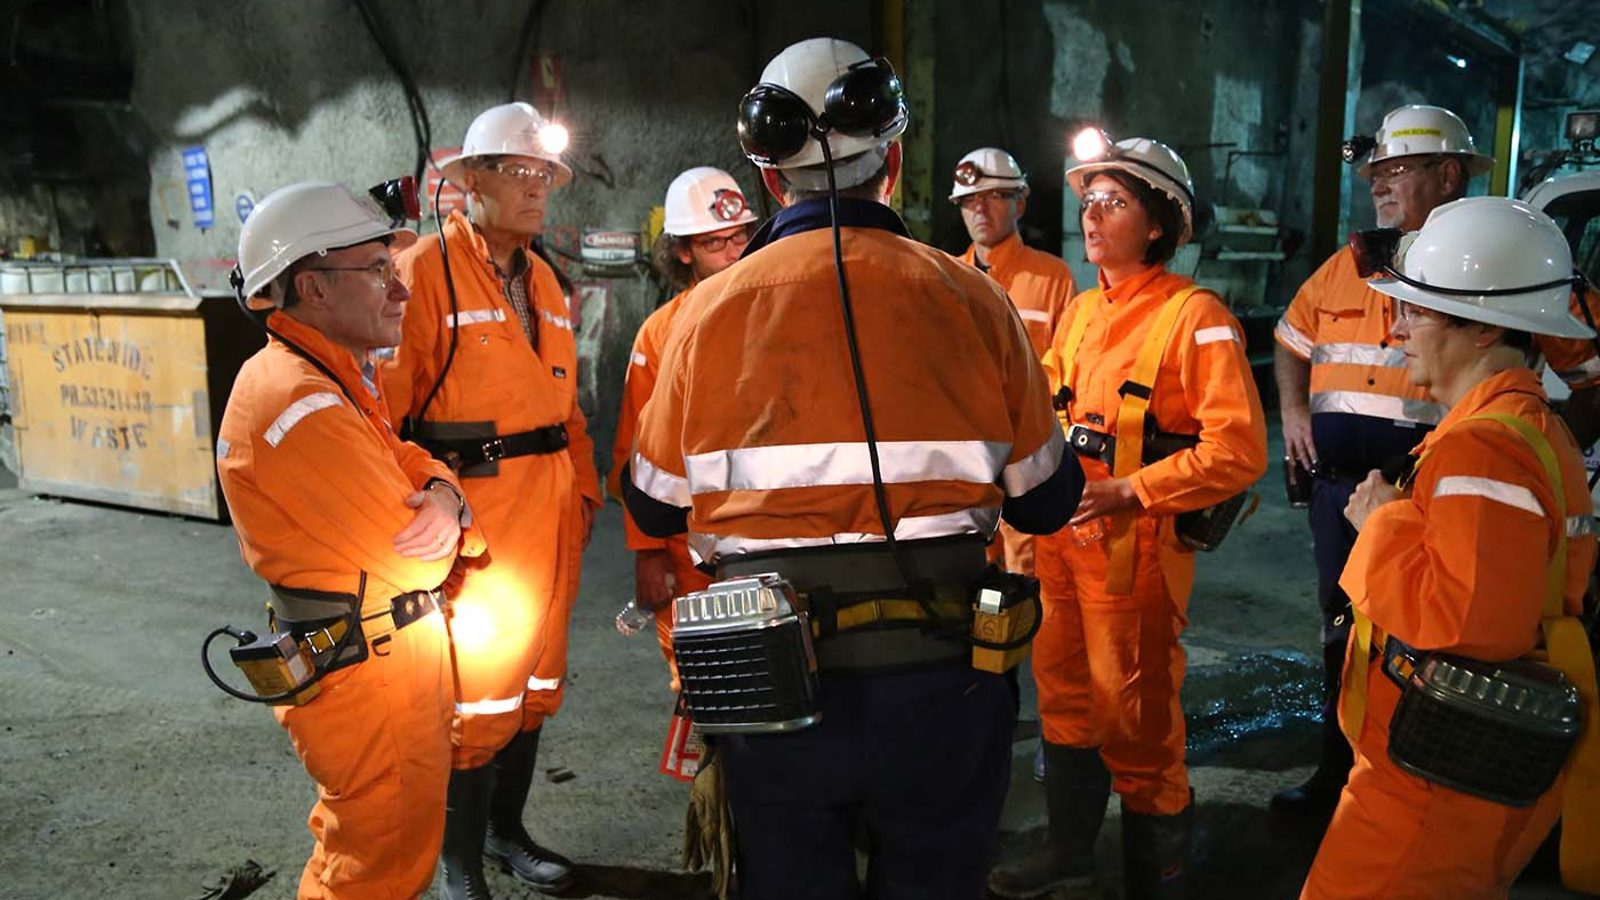 Rob Stewart of the Stawell Gold Mine (center, back turned), talks to scientists during a tour of the mine.